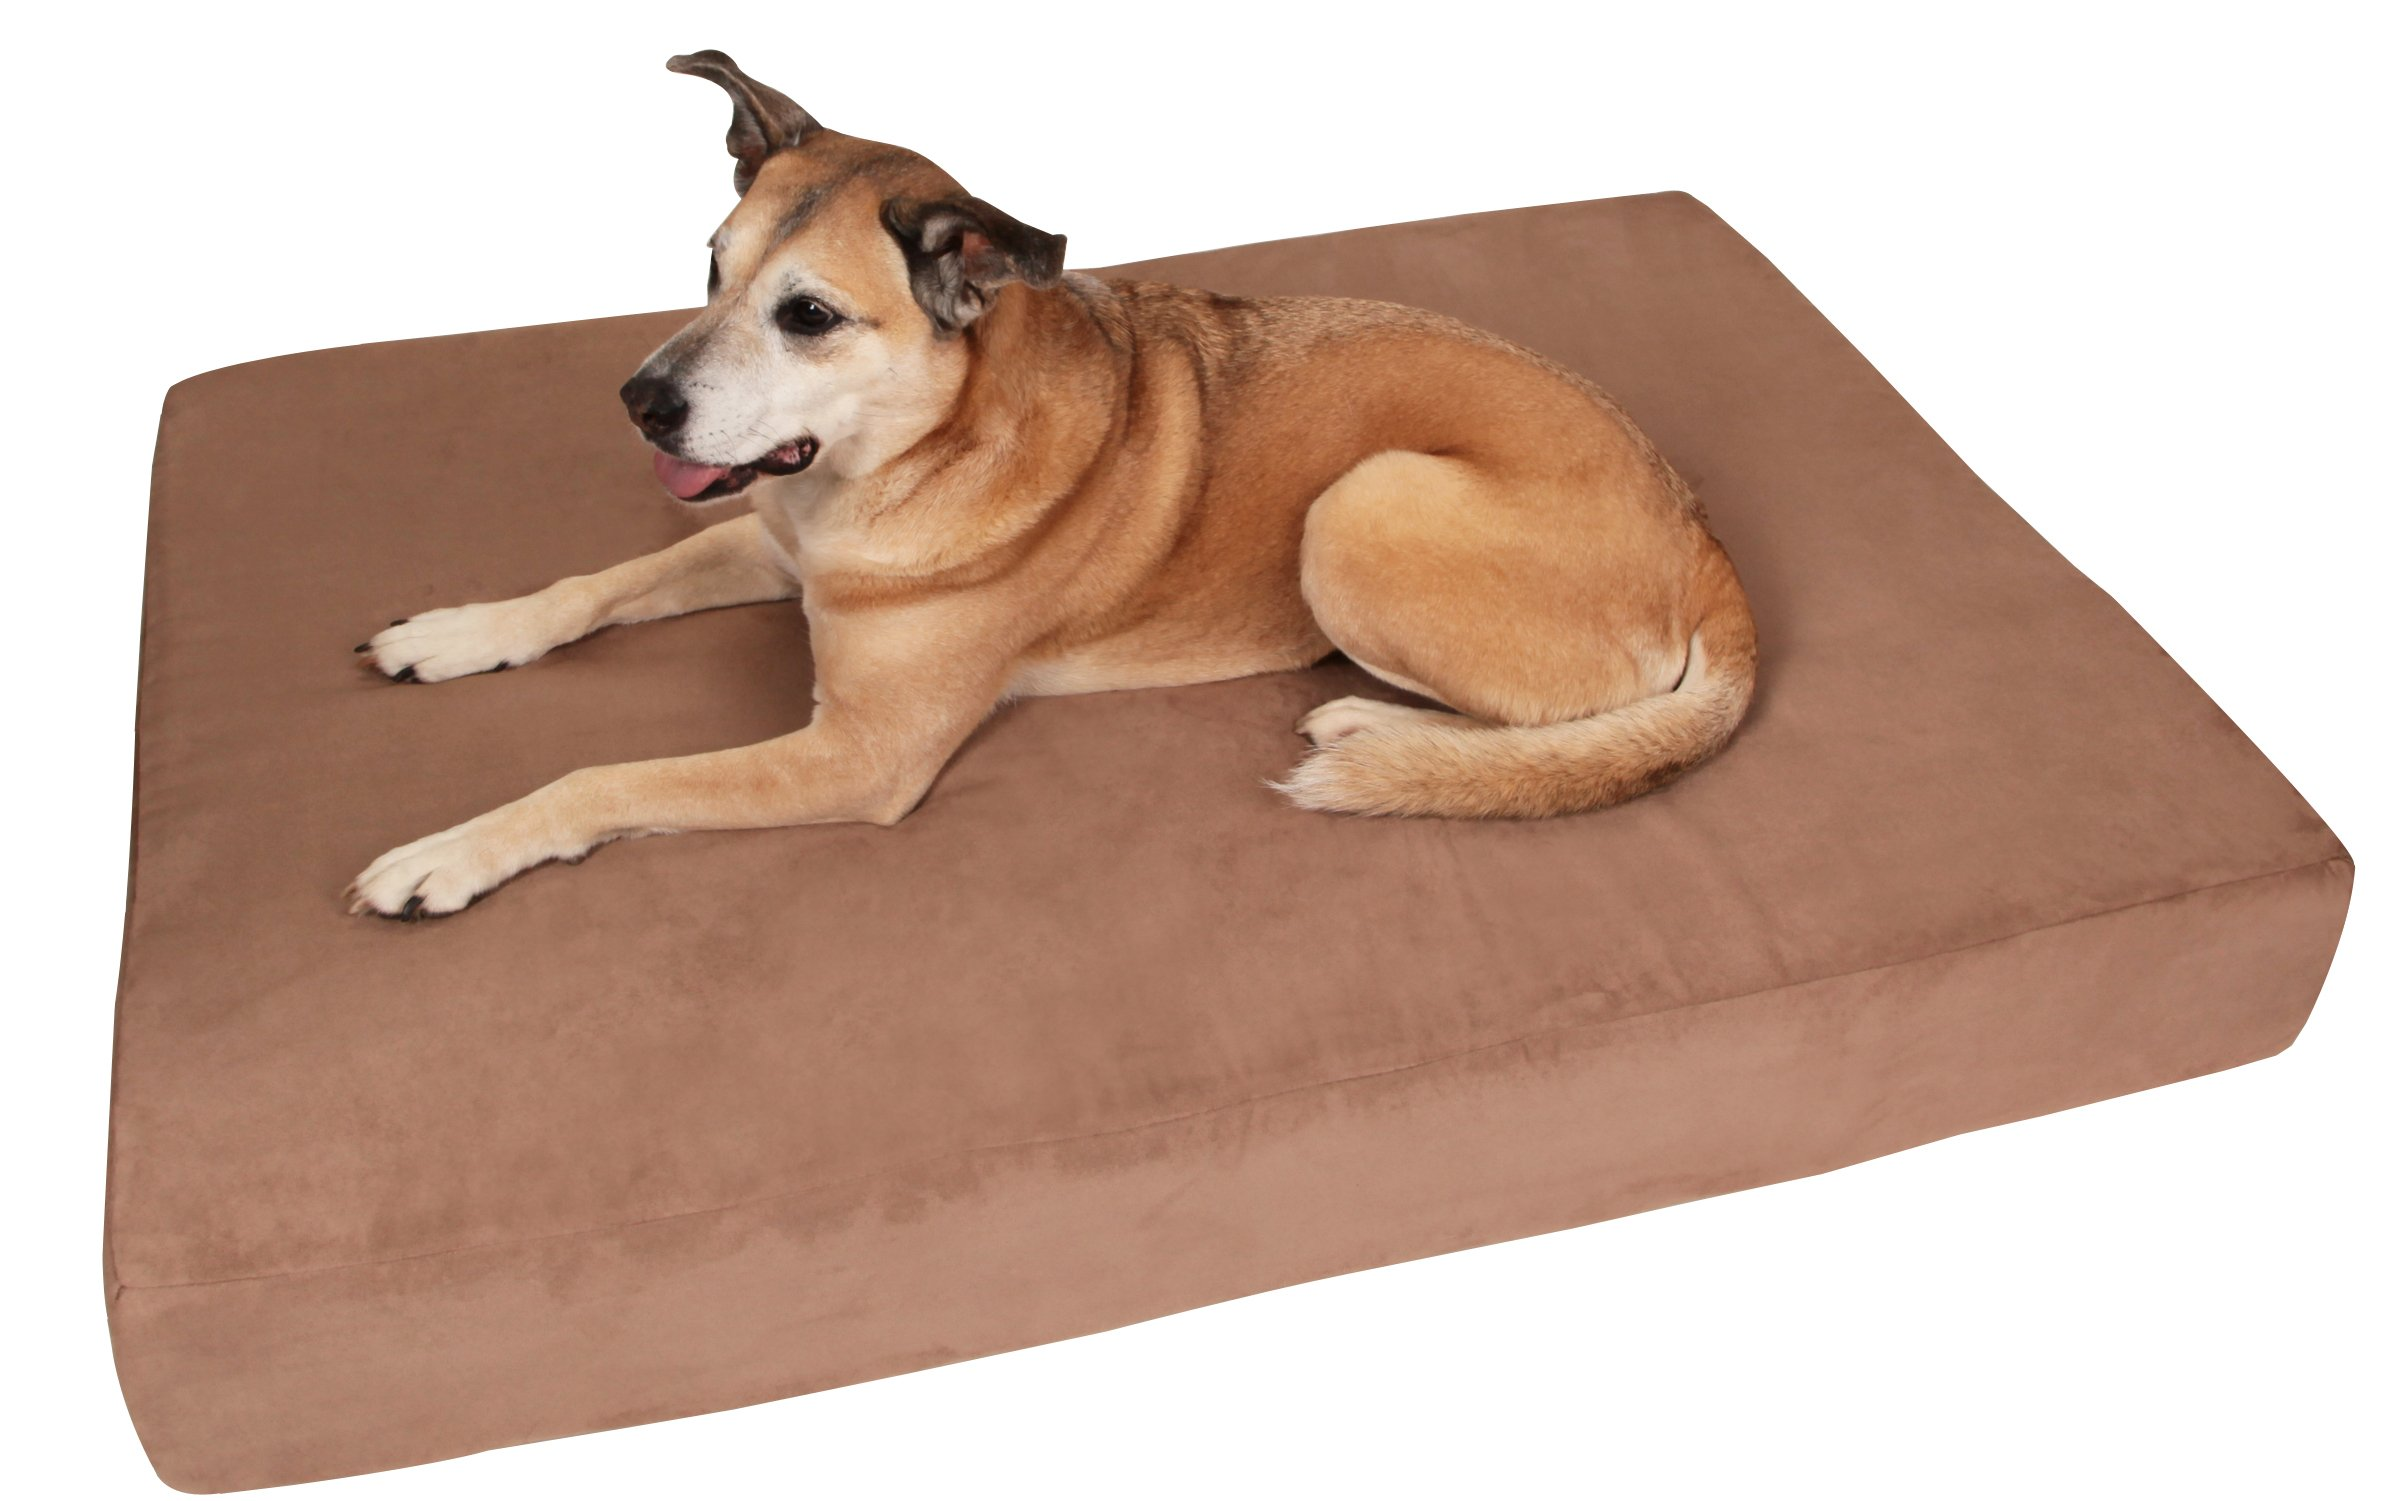 Big Barker 7'' Pillow Top Orthopedic Dog Bed - Large Size - 48 X 30 X 7 - Khaki - For Large and Extra Large Breed Dogs (Sleek Edition)